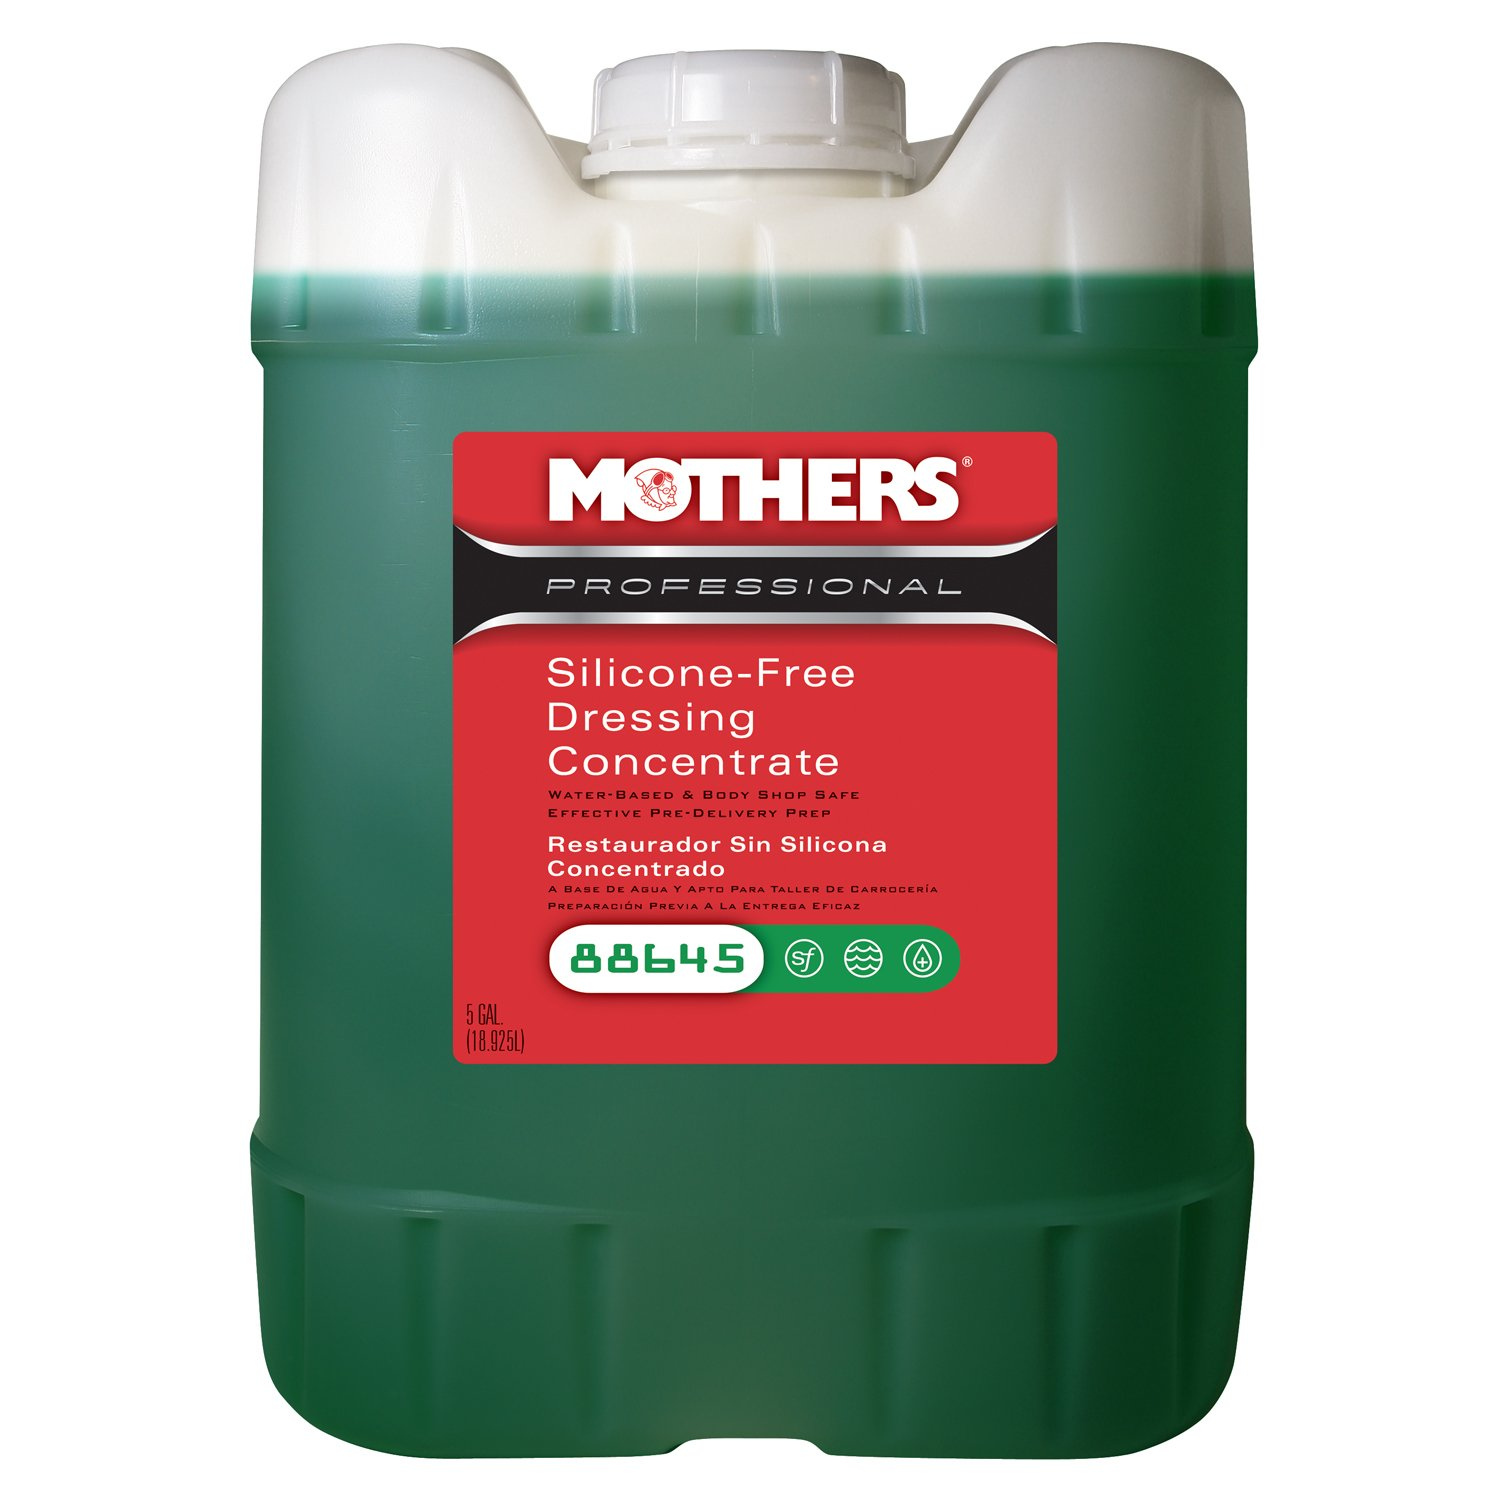 Mothers 88645 Professional Silicone-Free Dressing Concentrate - 5 Gallon